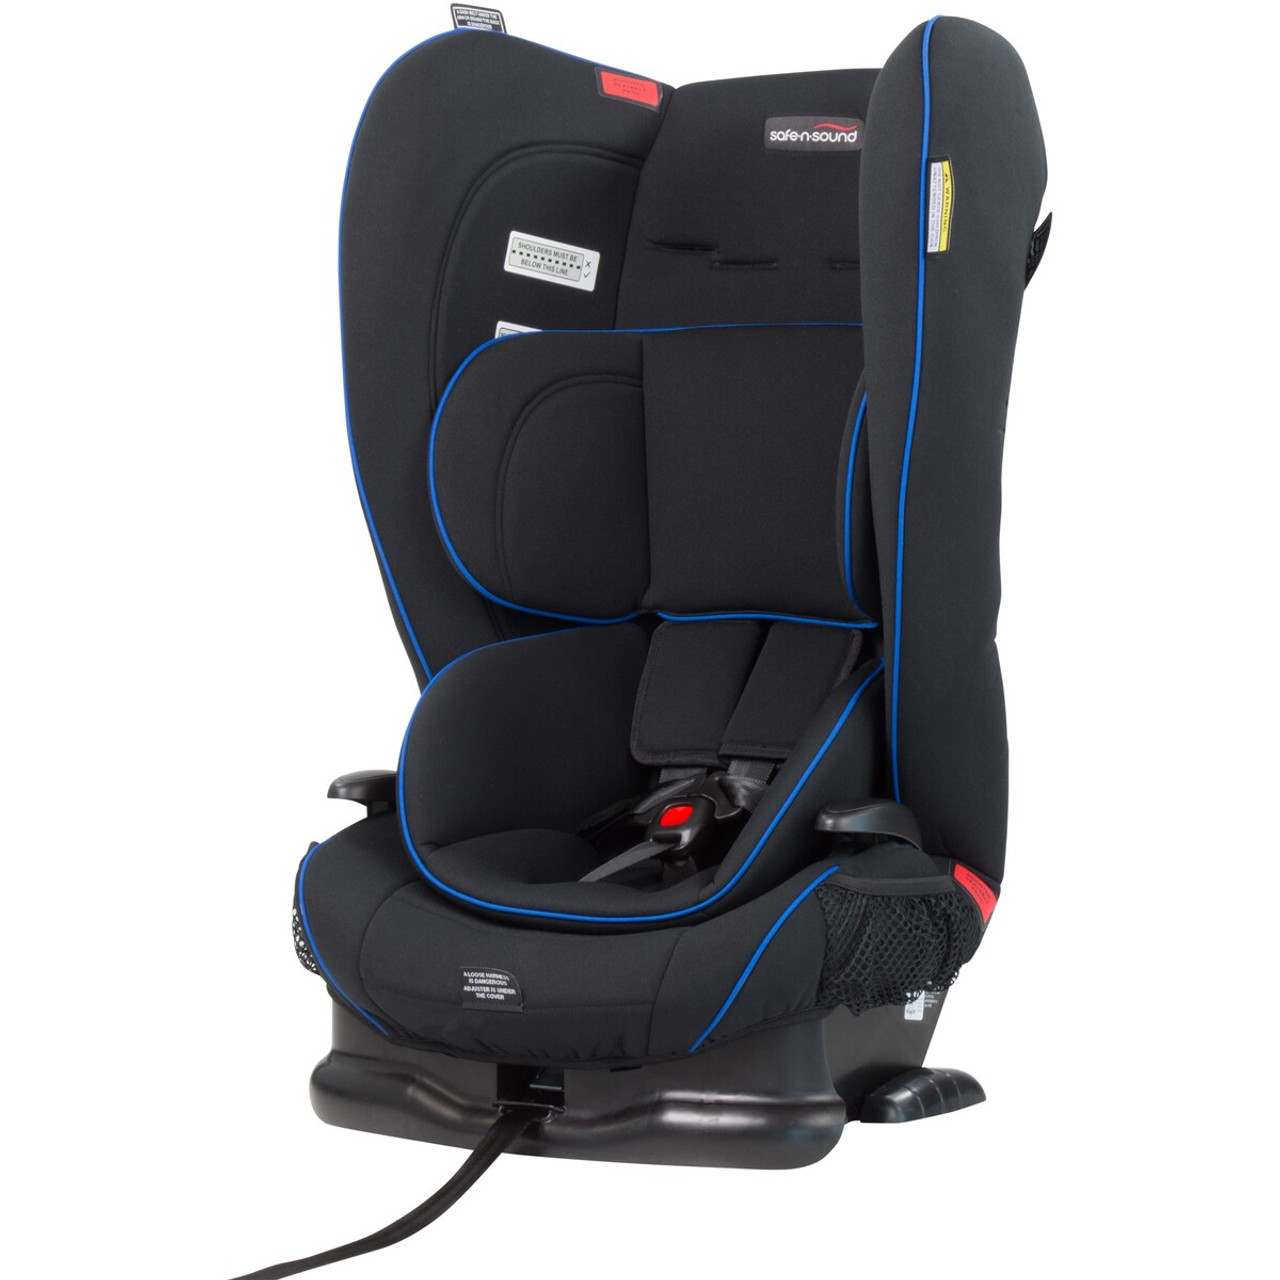 Safe N Sound Novus II Harnessed Booster at Baby Barn Discounts Safe N Sound Novus II provides your child the security of an internal harness and then convert the seat into a Booster as they grow.